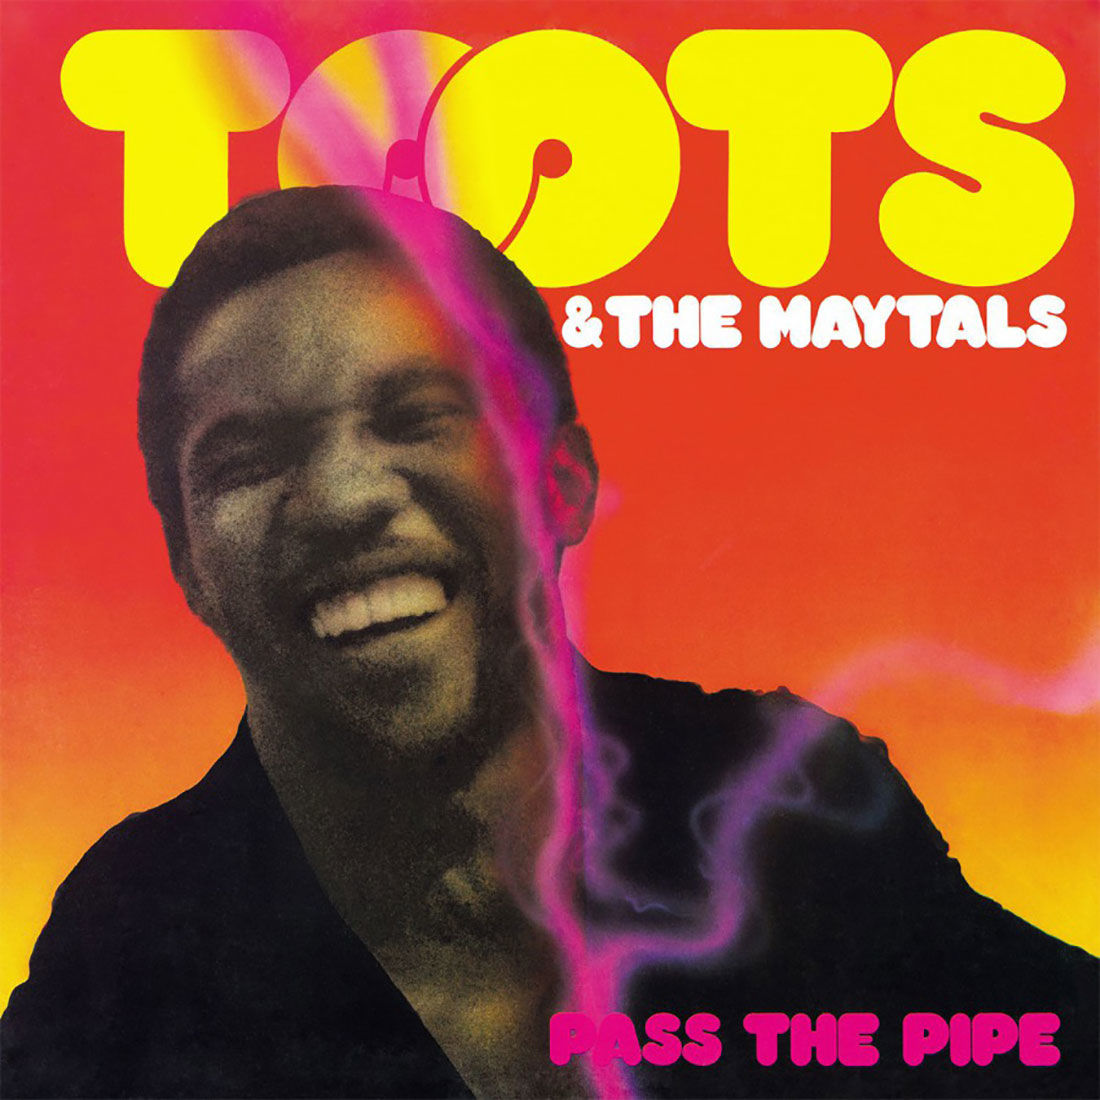 Toots and the Maytals - Pass the Pipe